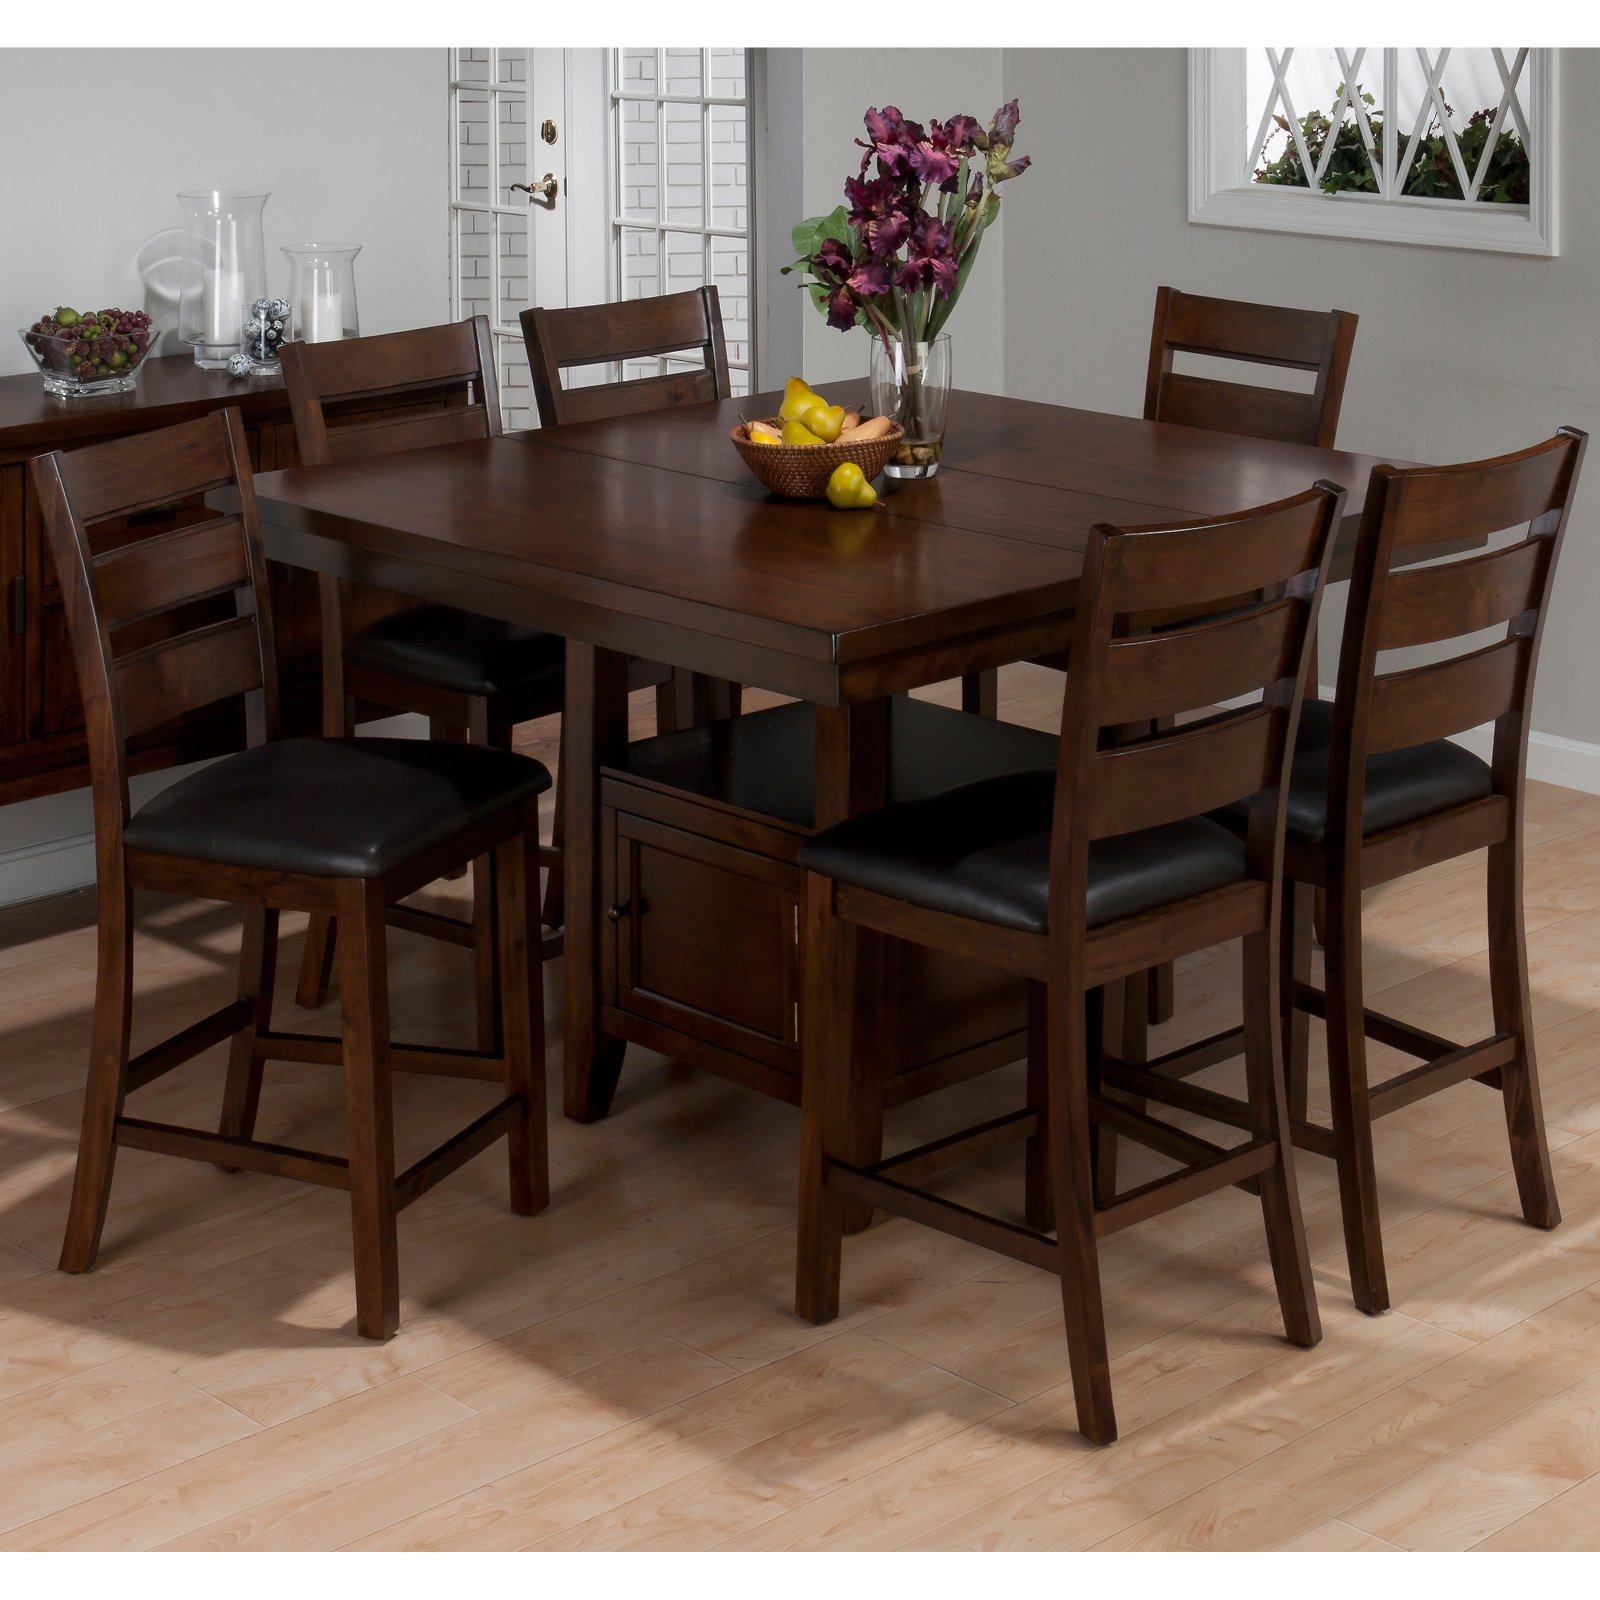 Beau Jofran Taylor Cherry 7 Piece Counter Height Dining Table Set